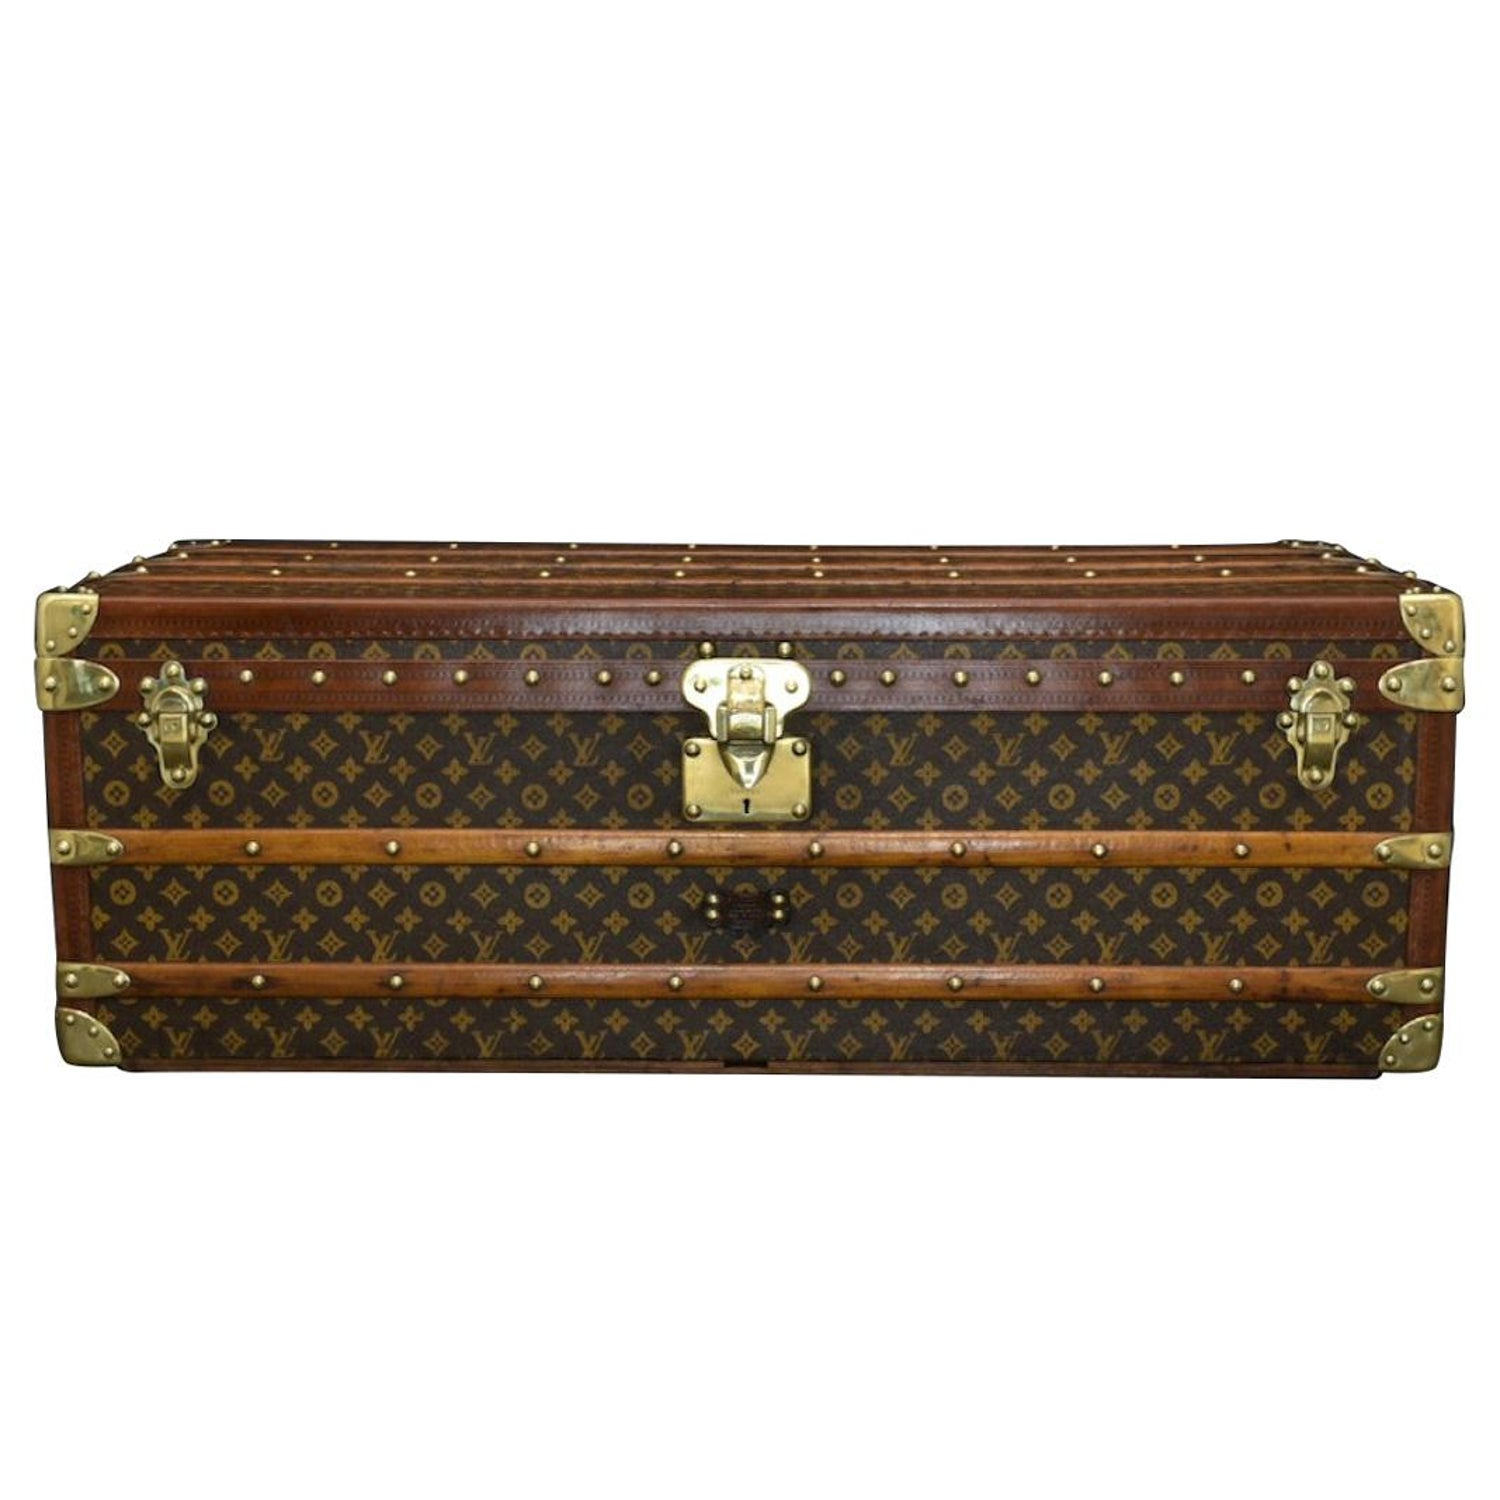 Magnificent Louis Vuitton Furniture Trunks Luggage More 279 For Creativecarmelina Interior Chair Design Creativecarmelinacom